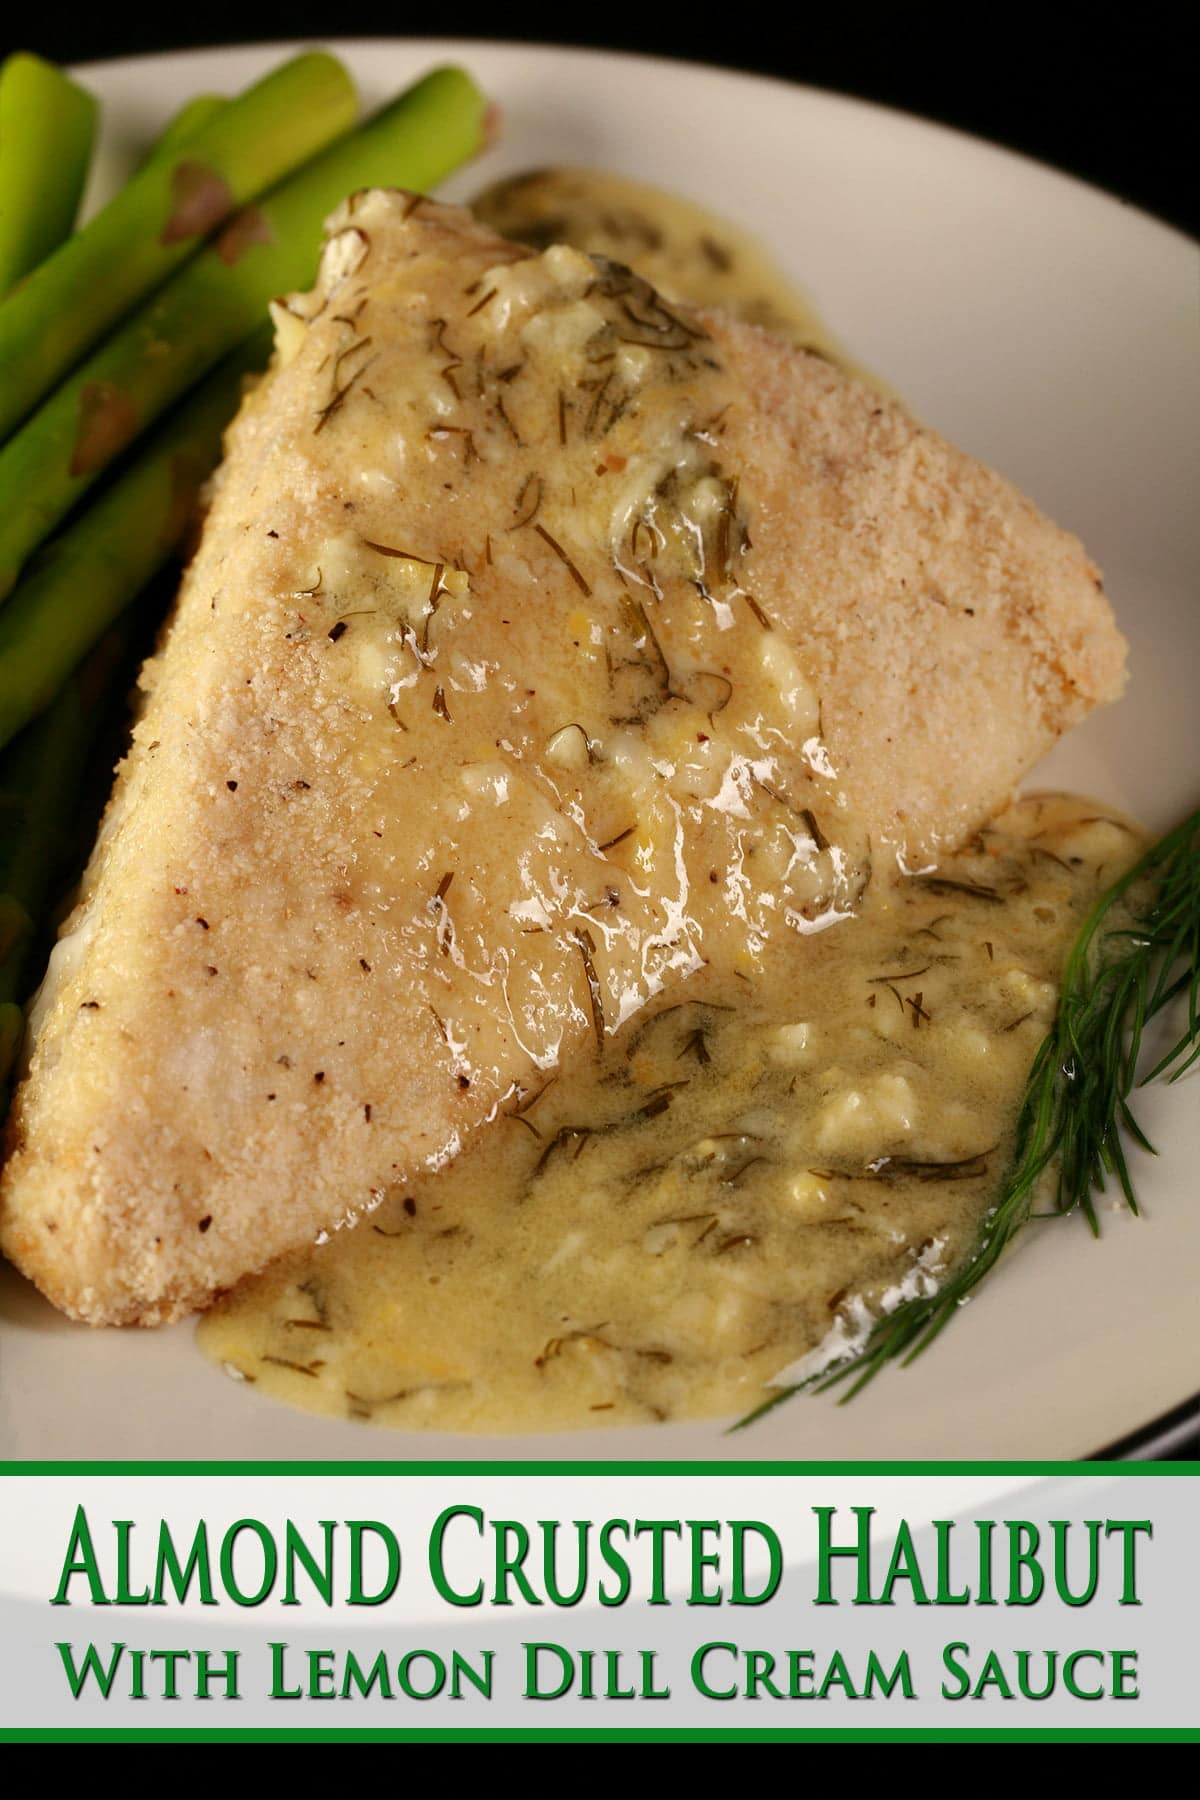 A large piece of almond crusted halibut is on a white plate. A yellow cream sauce with flecks of green - lemon dill cream sauce - has been poured over the fish, and there are asparagus spears on the side.